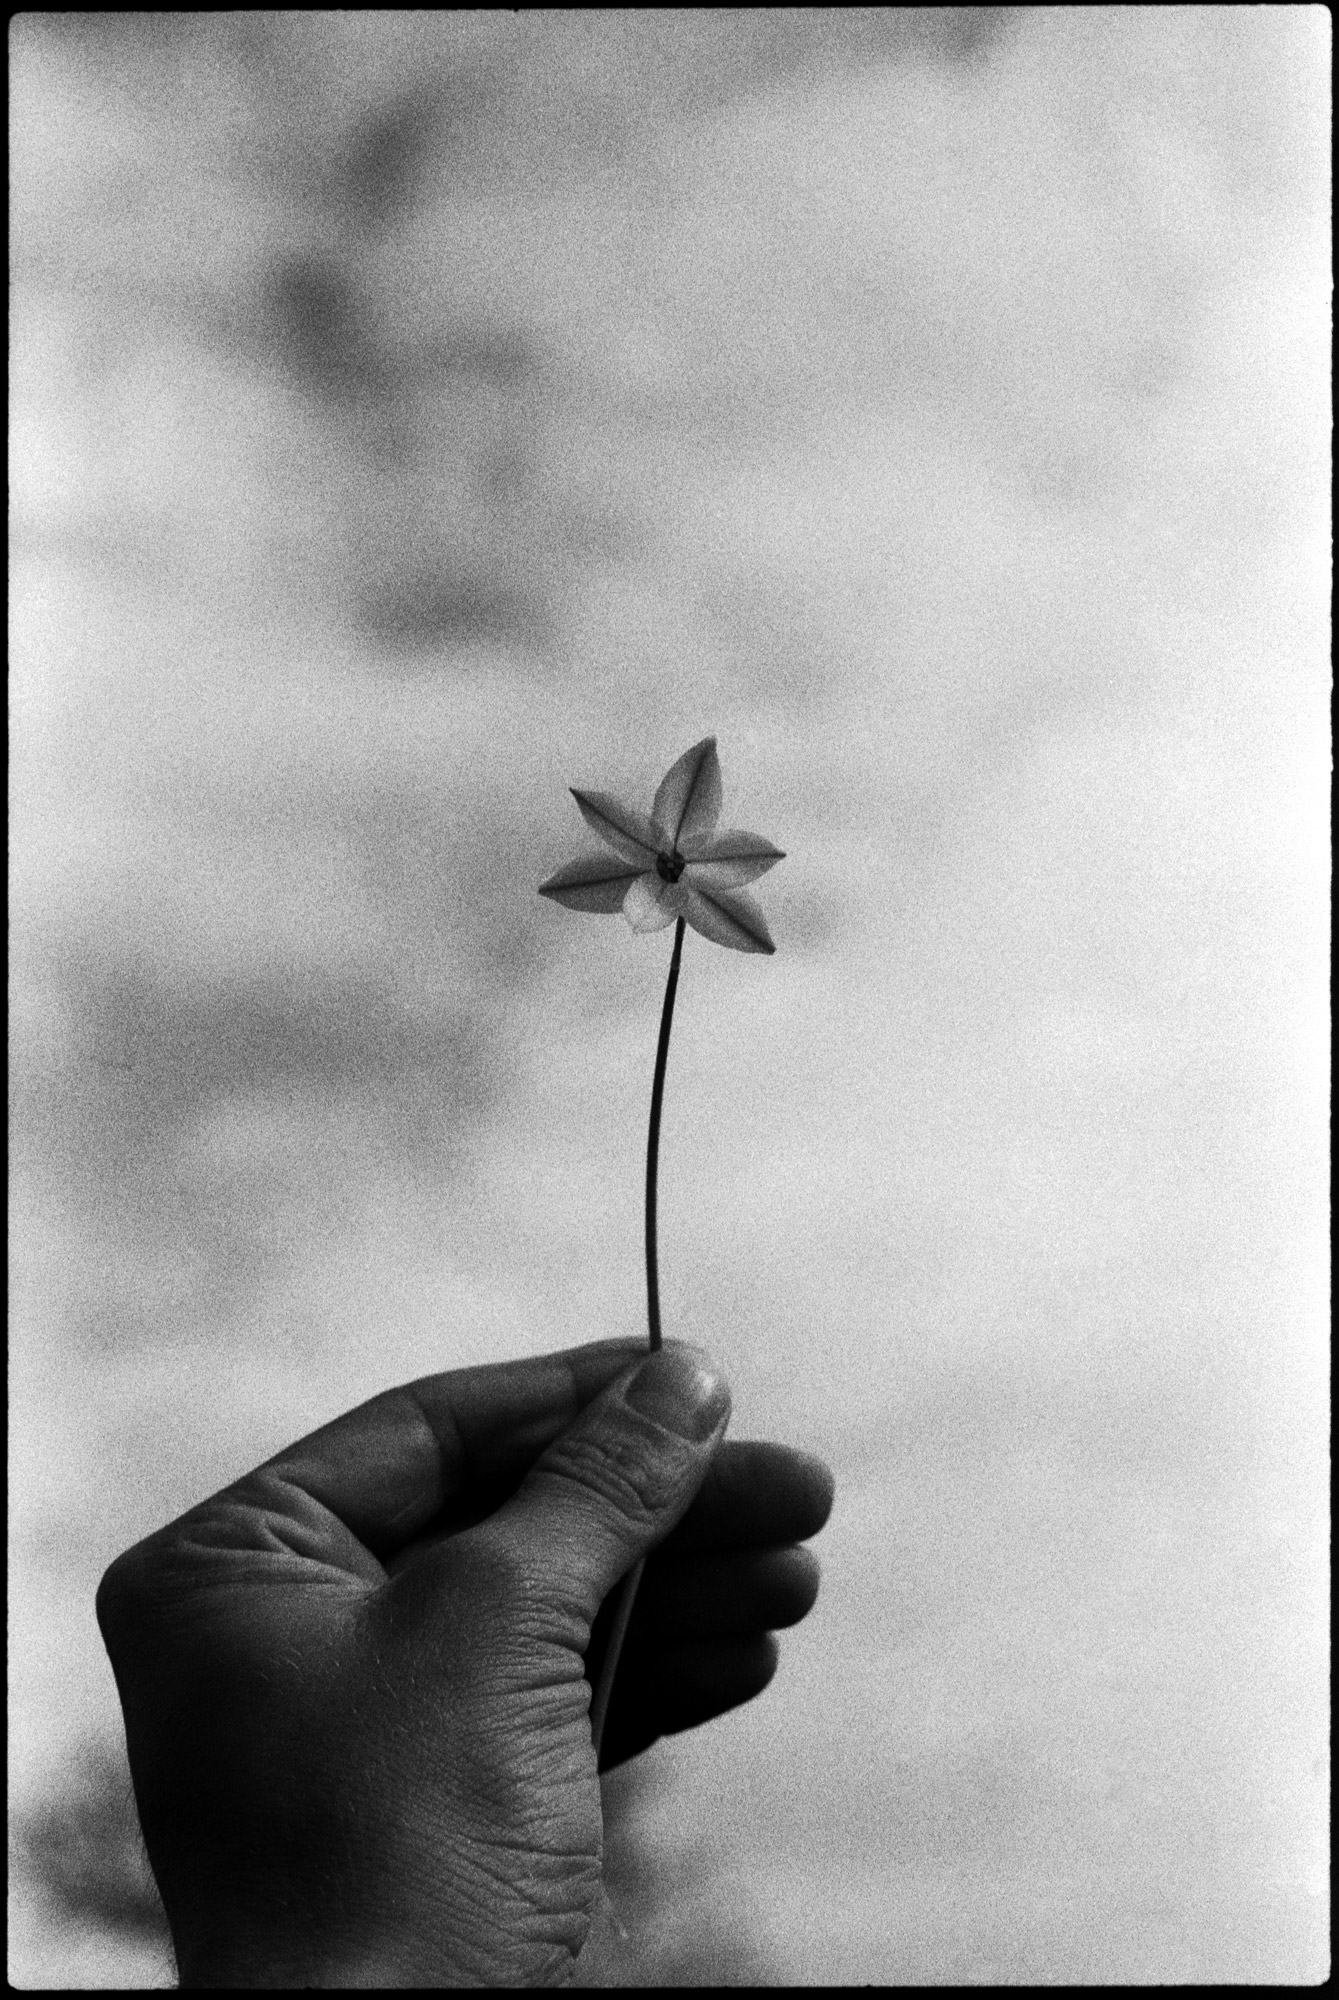 Holding up a flower, black and white photo on film by ioannis koussertari